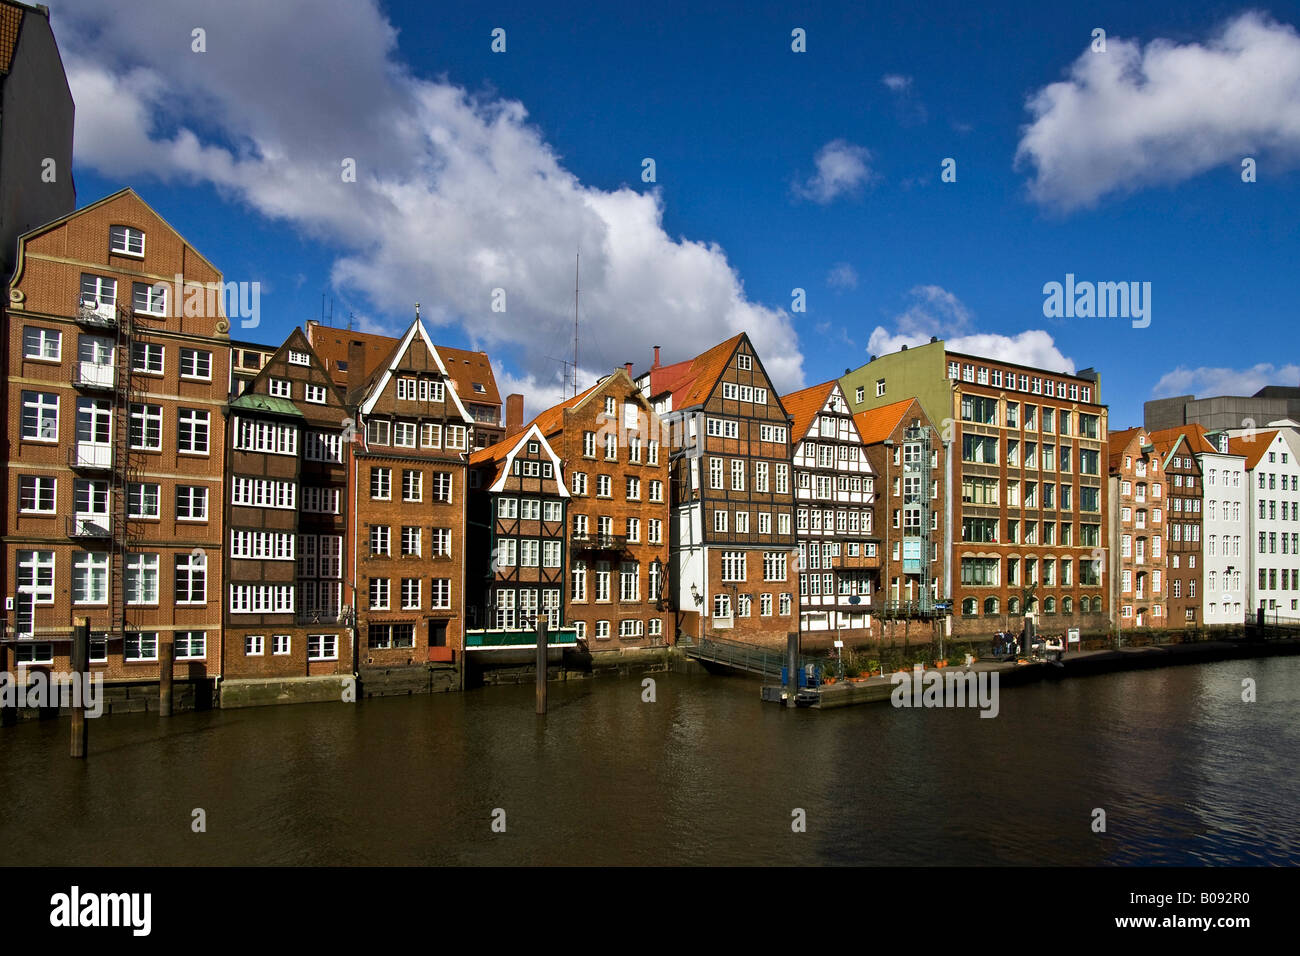 Historic warehouses along the Nikolaifleet waterfront in the historic centre of Hamburg, Germany - Stock Image